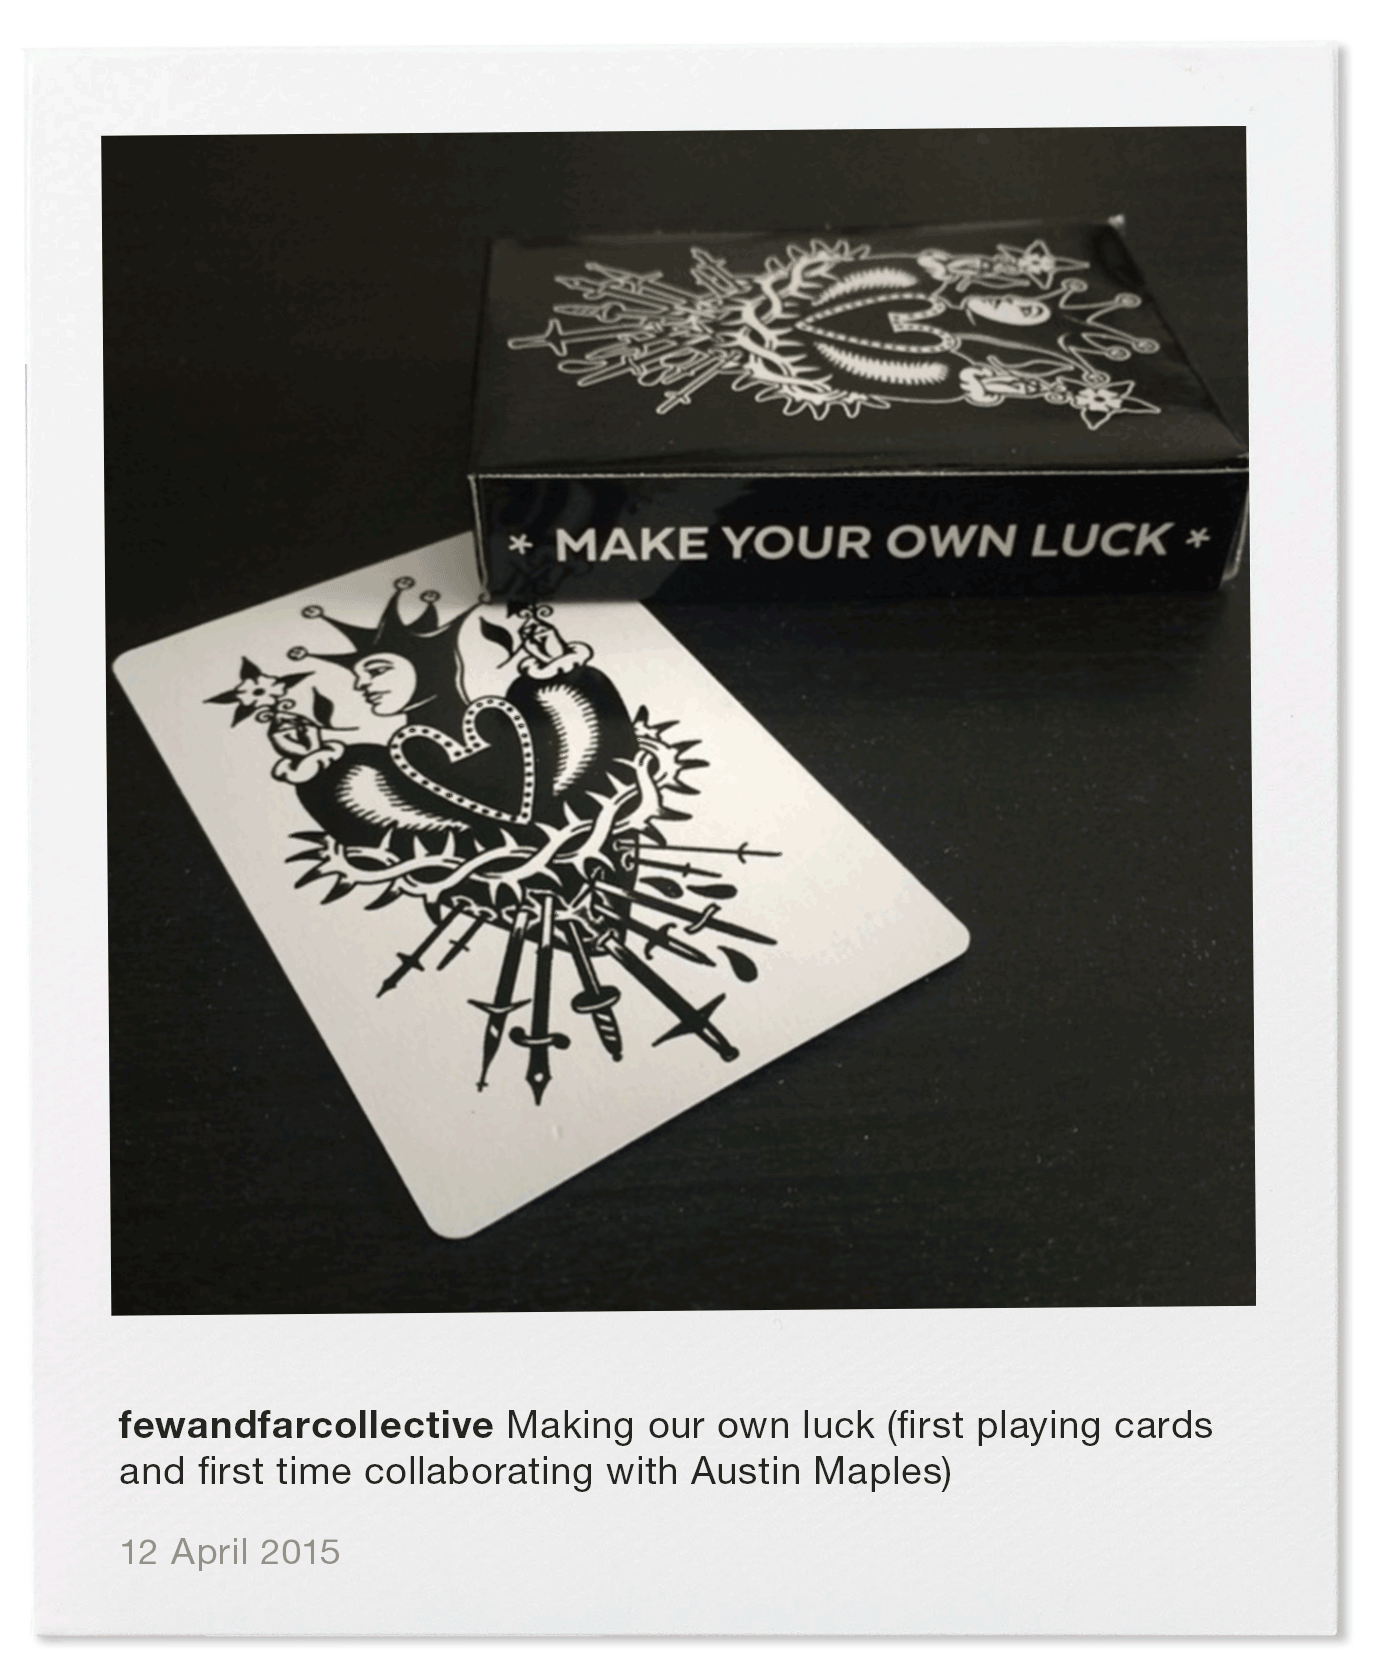 Making our own luck (first playing cards and first time collaborating with Austin Maples)